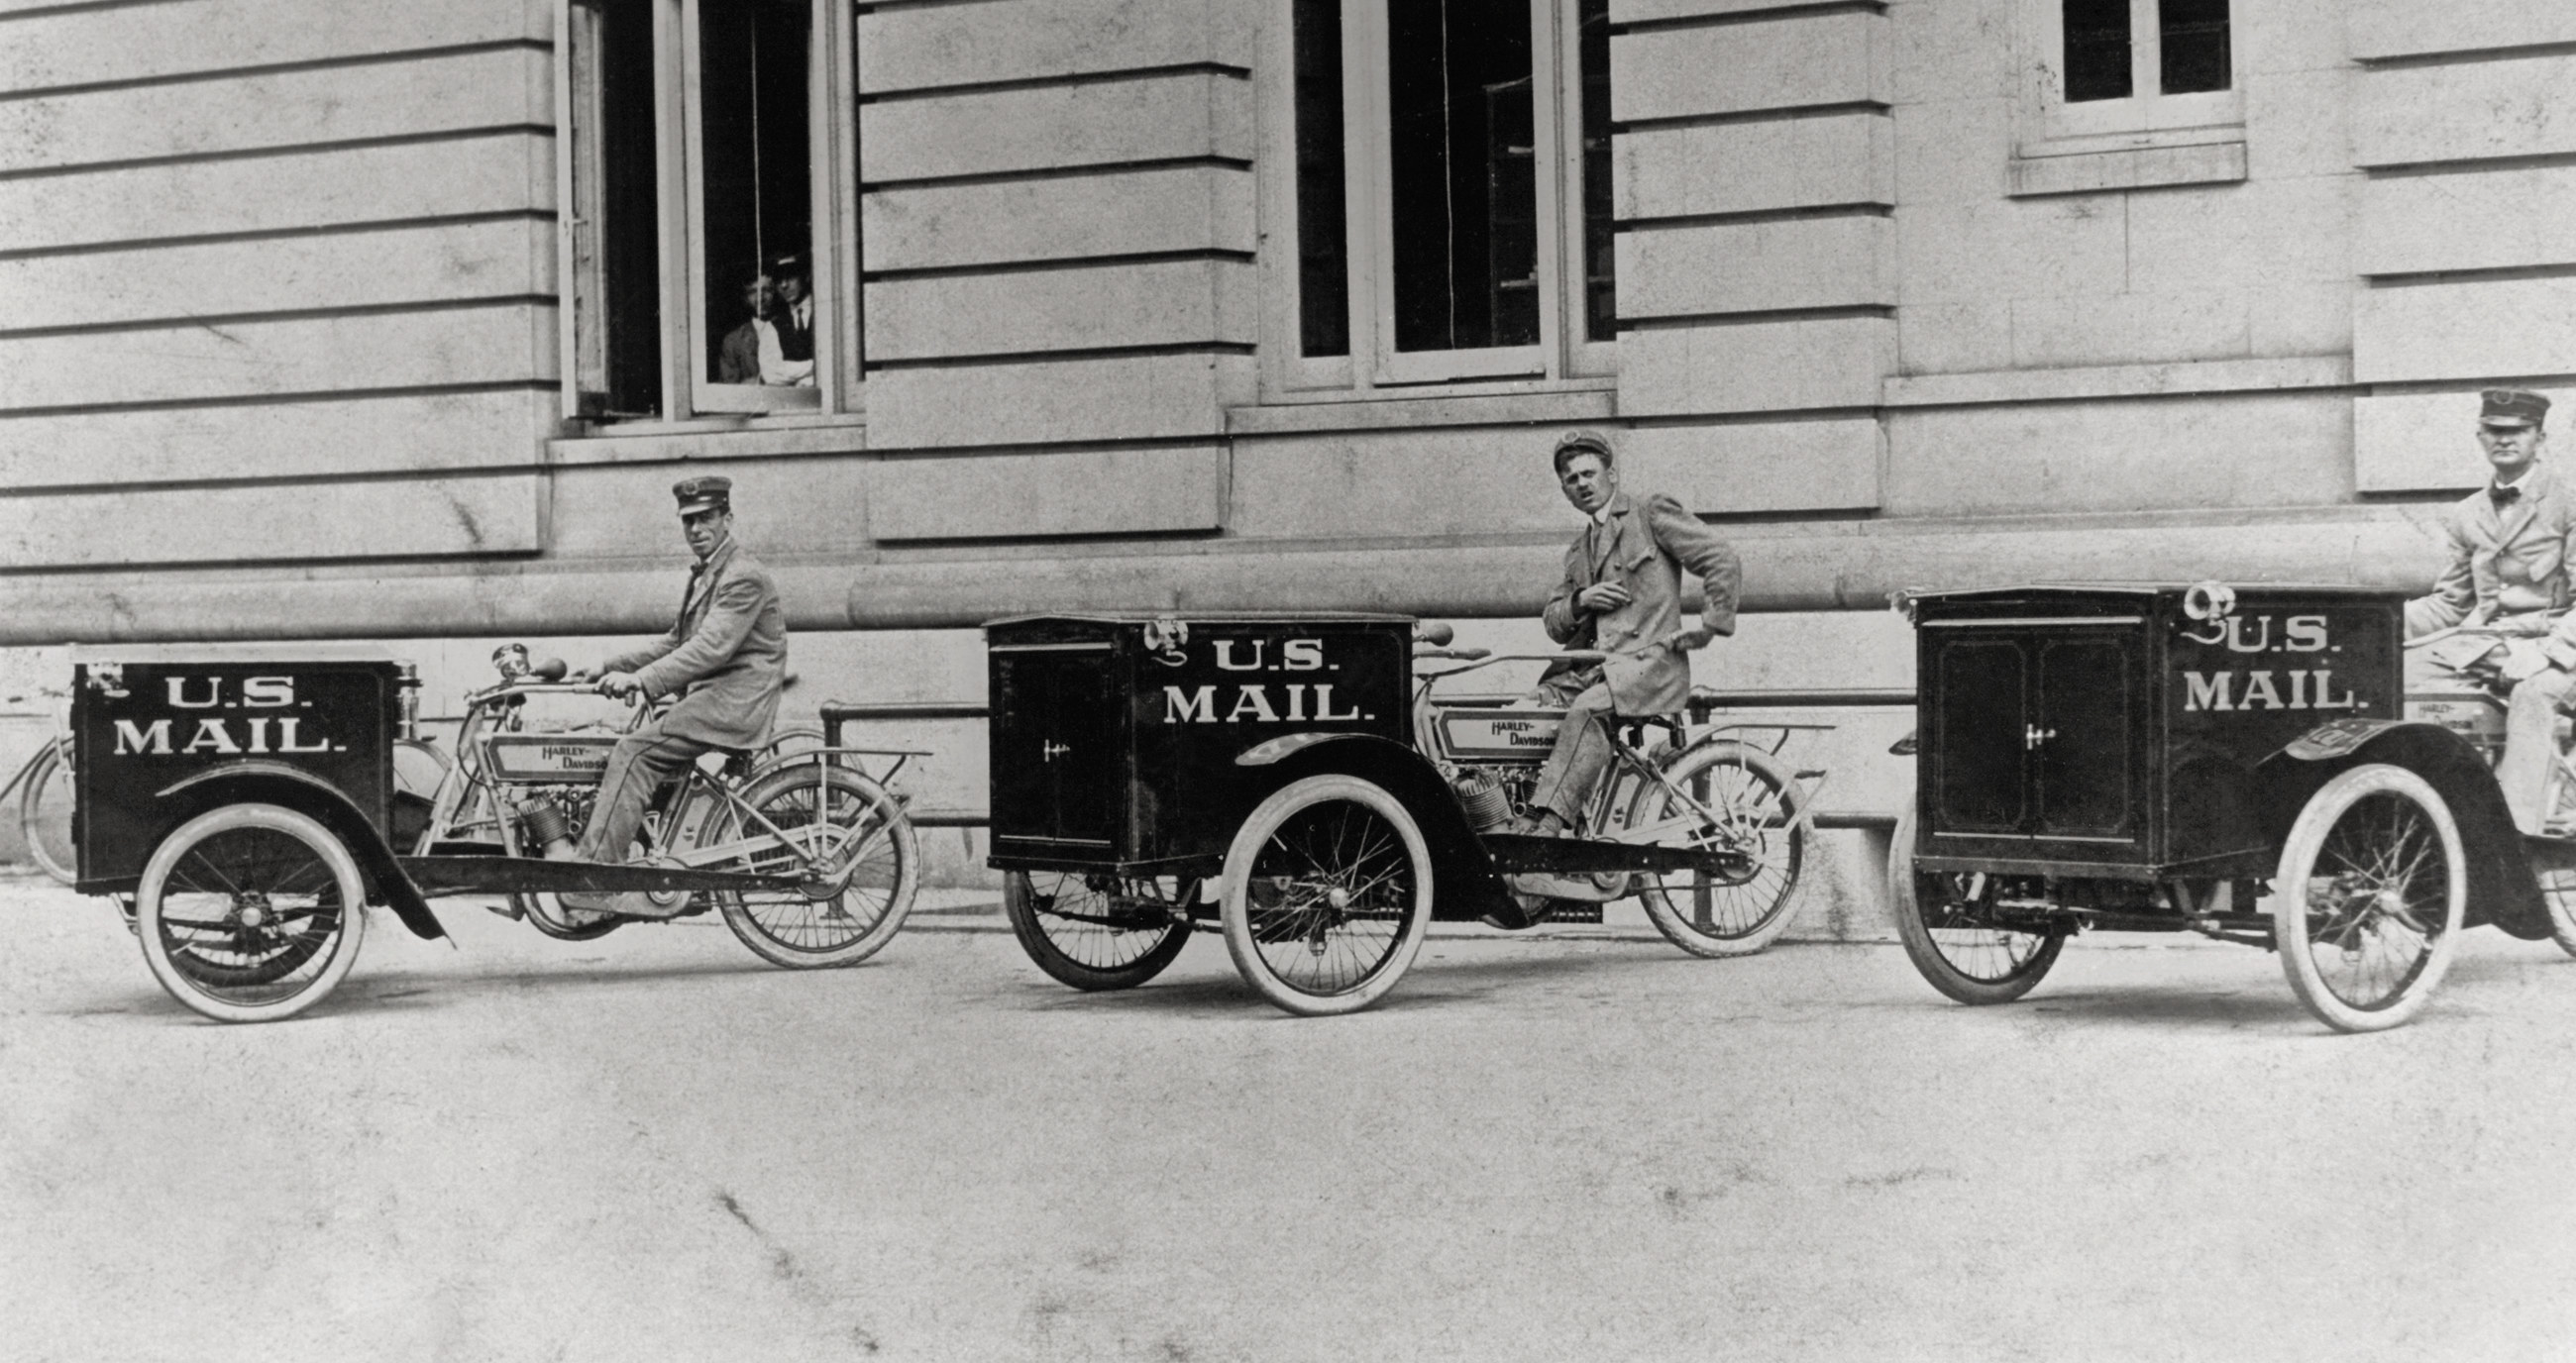 Three men on small motorcars that say US mail